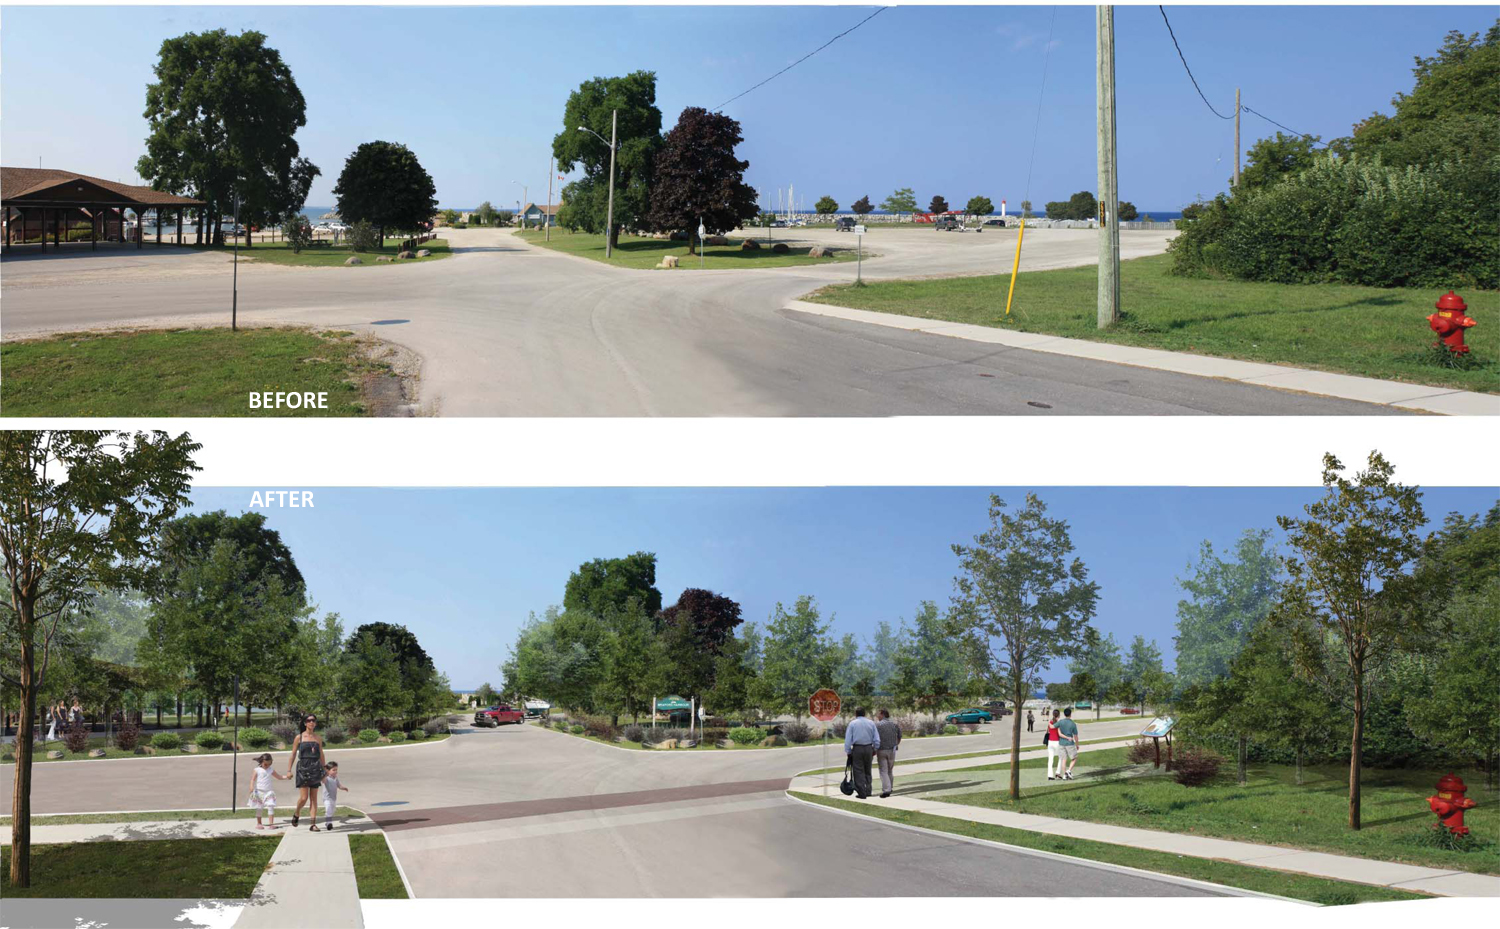 Before/After view of waterfront roadways and pedestrian use